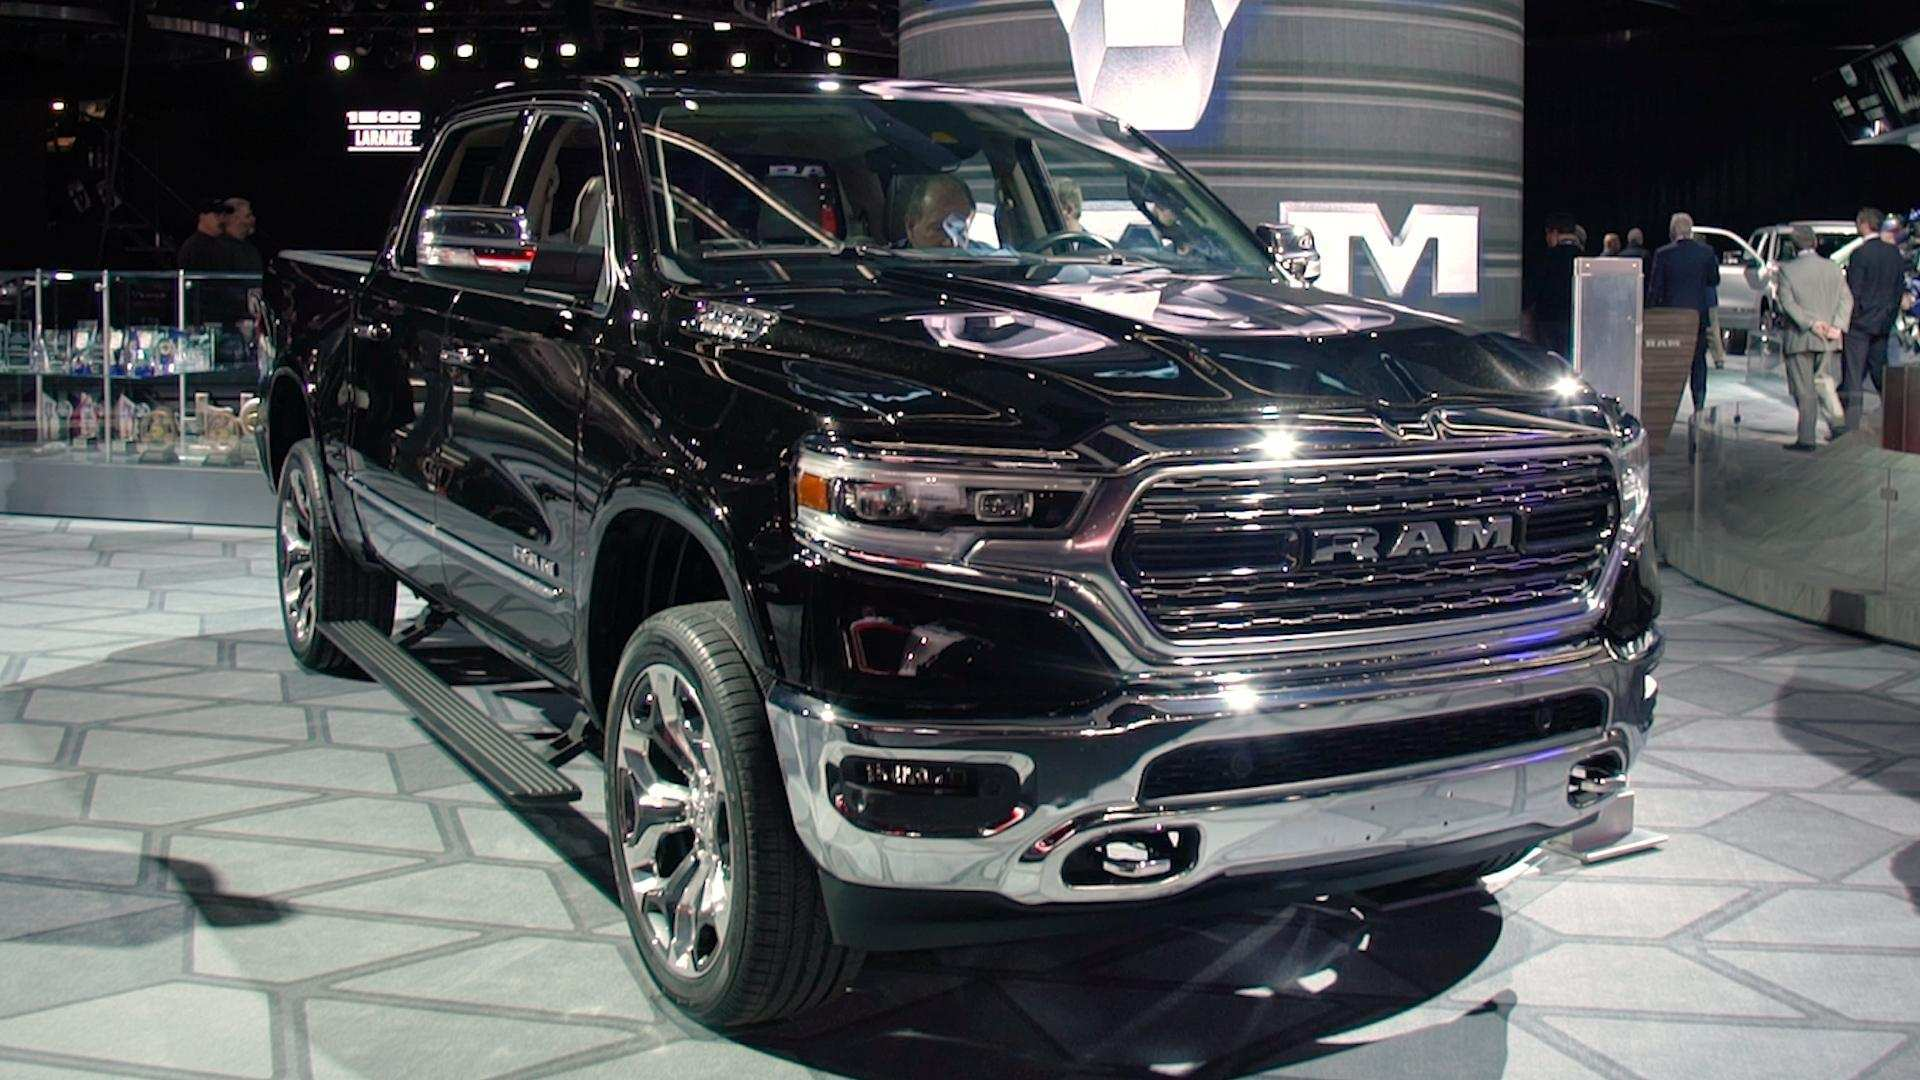 80 The 2019 Dodge Ram 1500 Images Concept